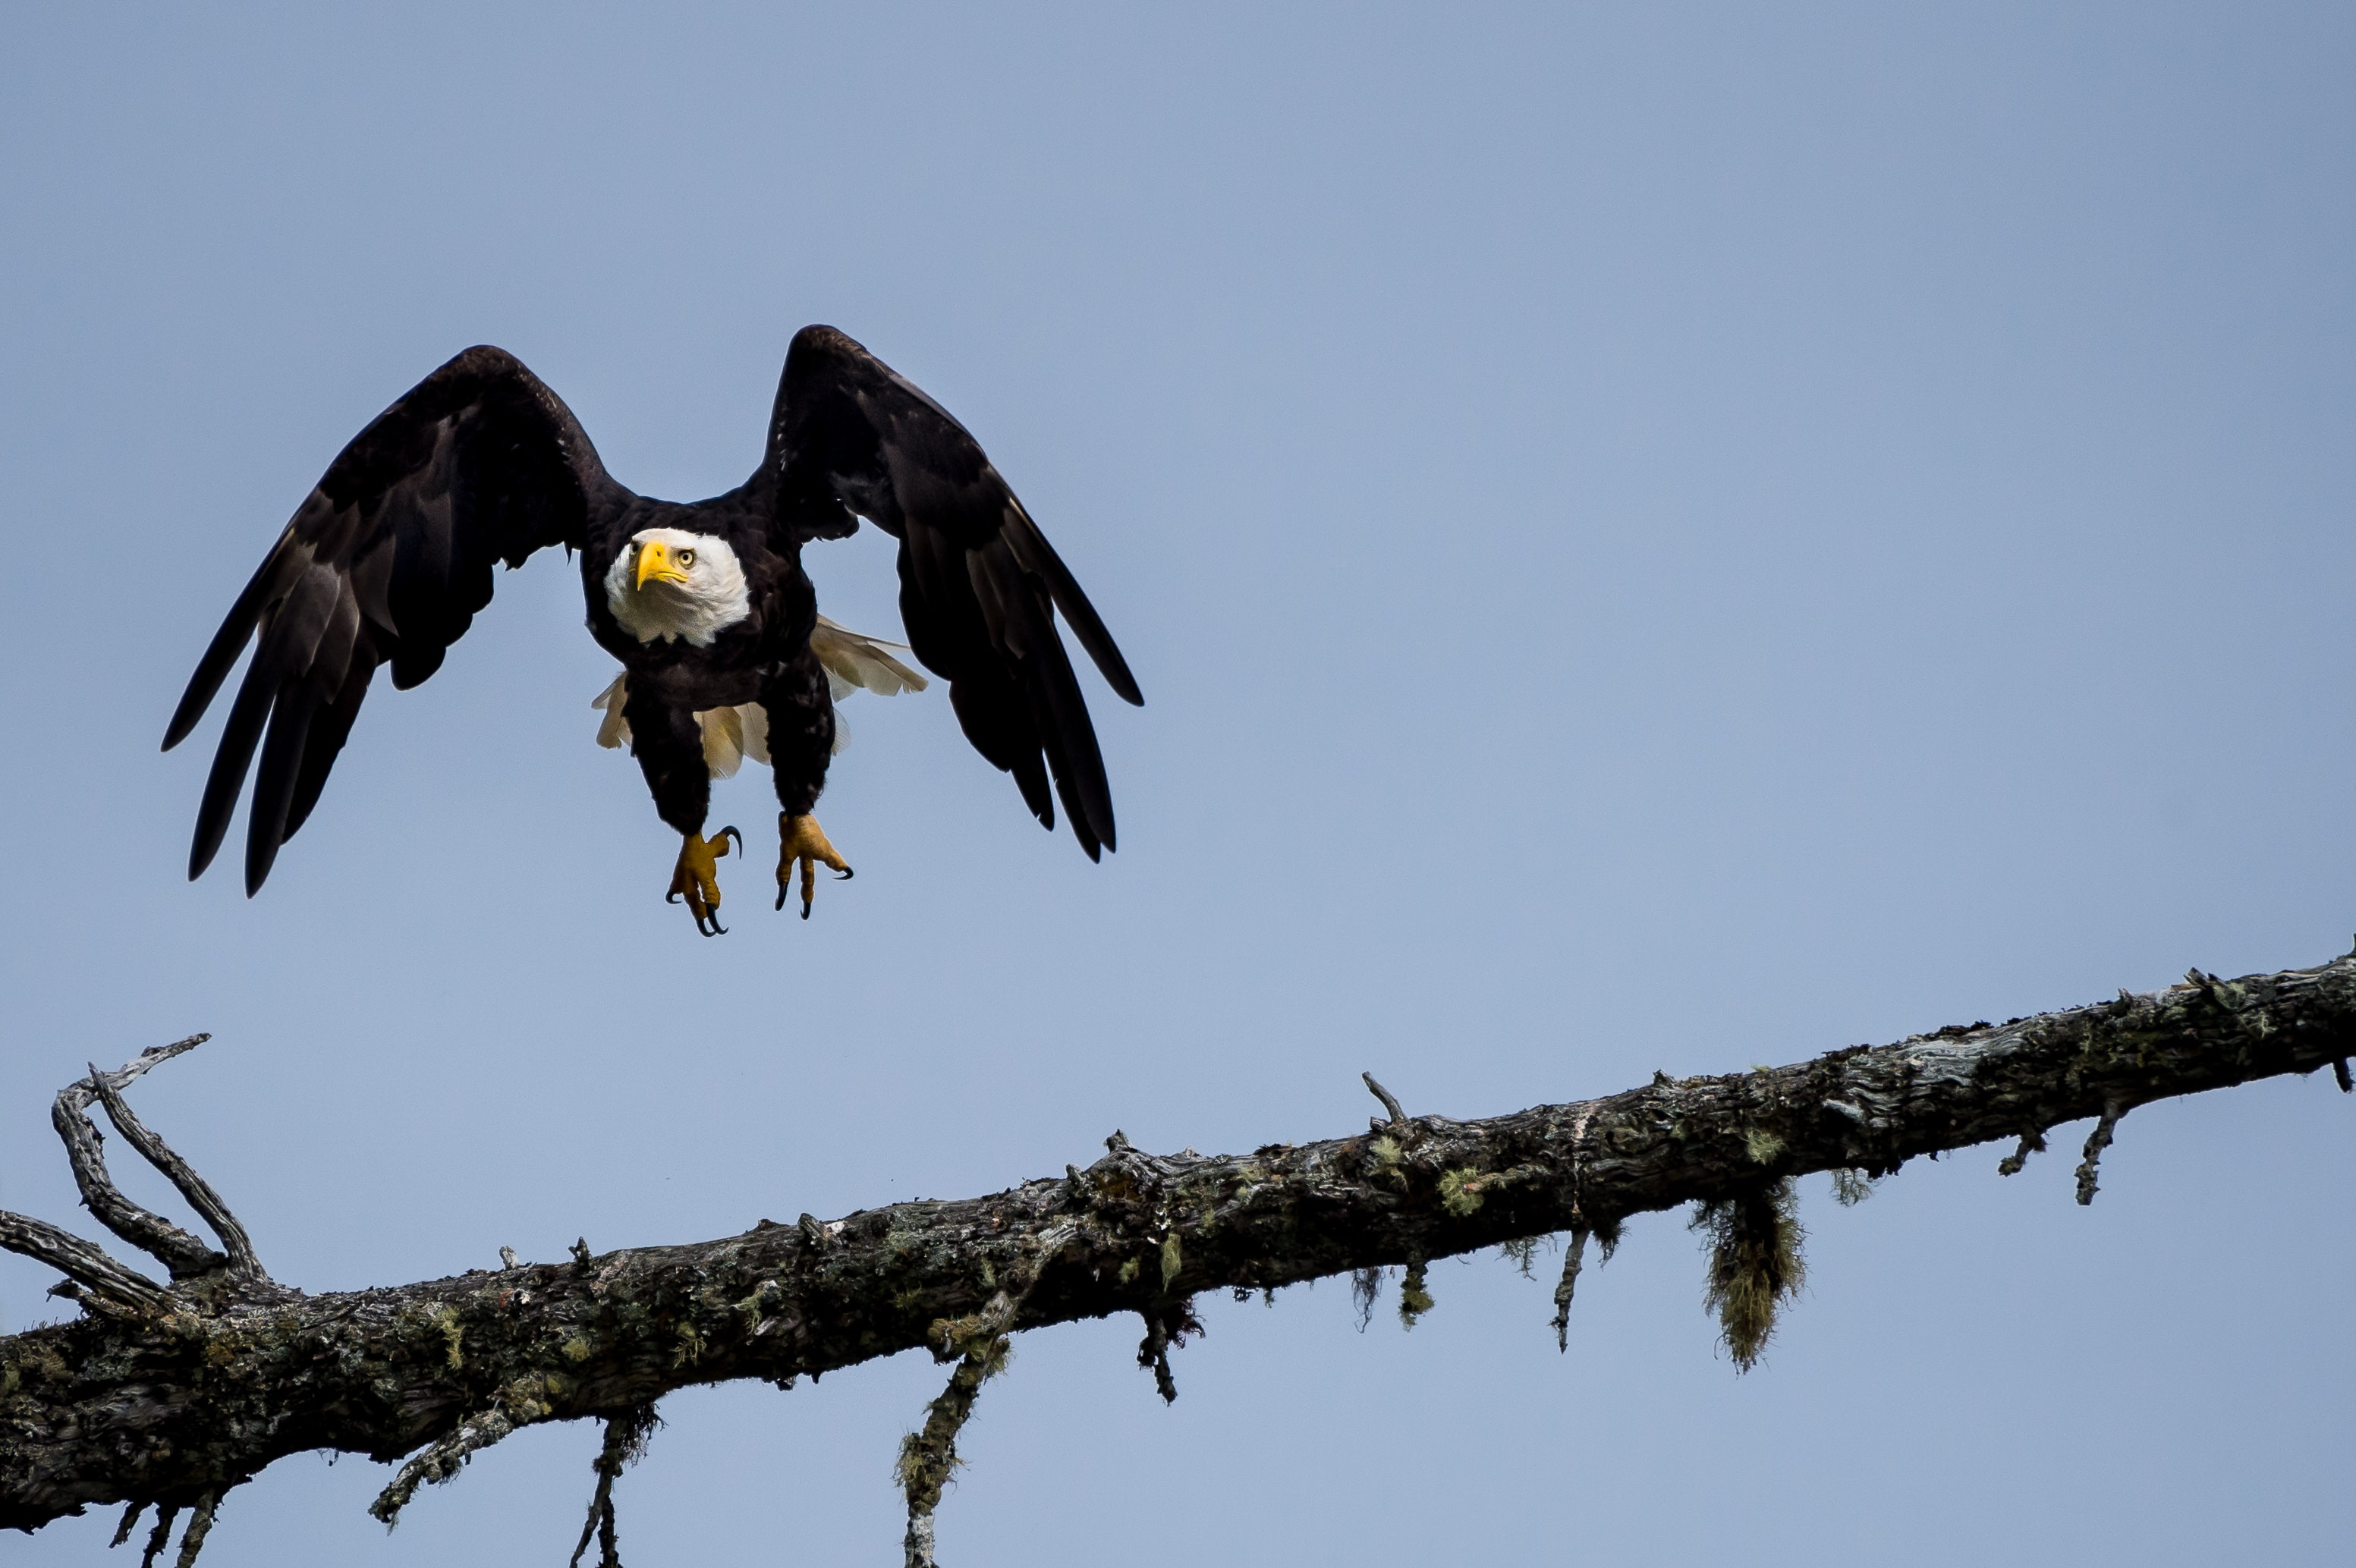 black bald eagle about to perch on branch